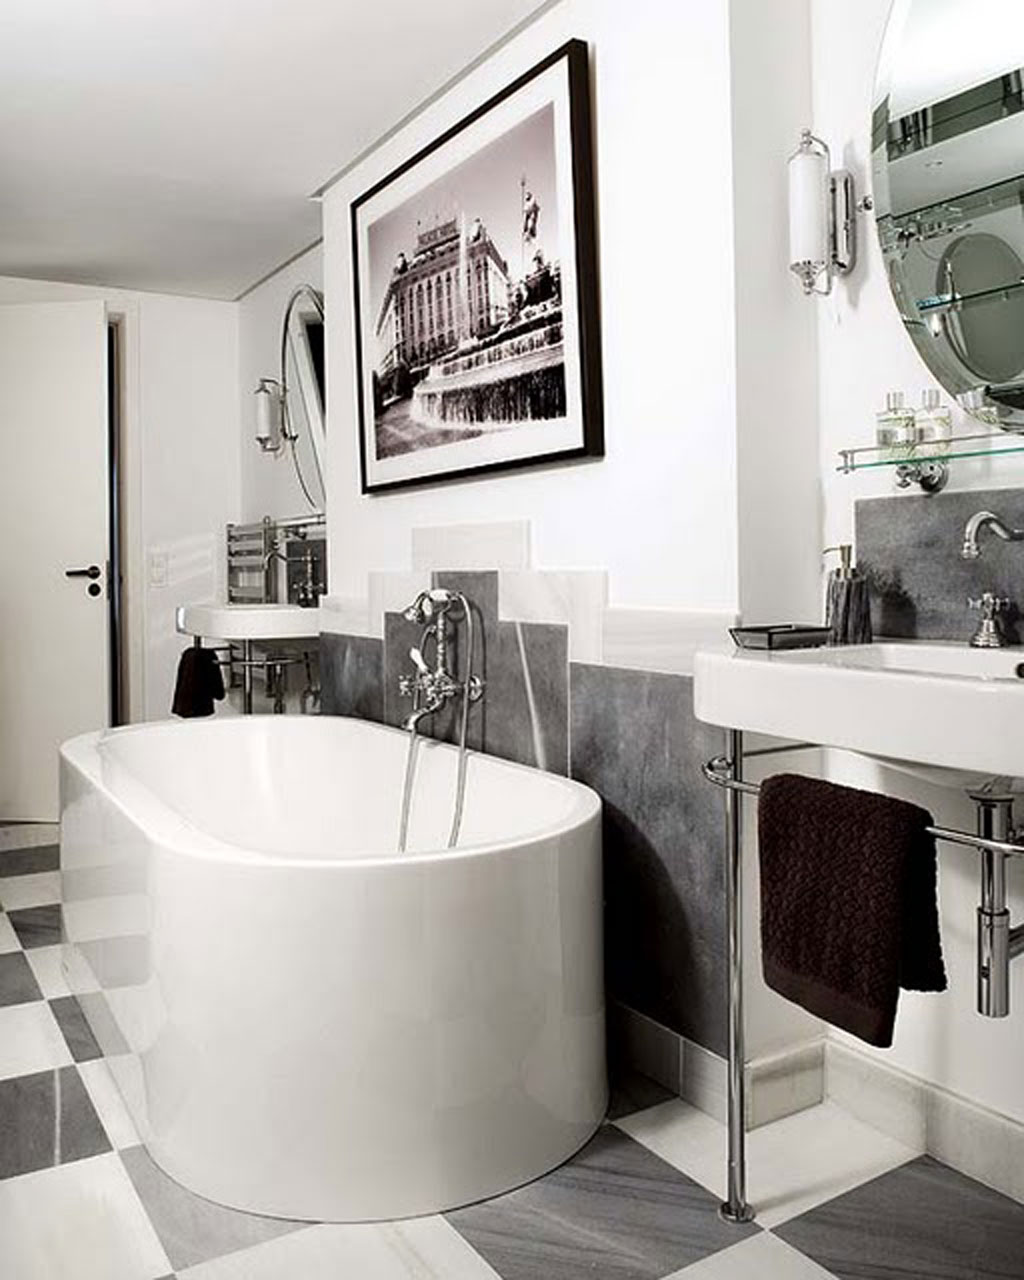 Art-Deco-Bathroom-Designs-With-Bath-Tub-Black-and-White-TIles-also-Picture-Frame-on-Top